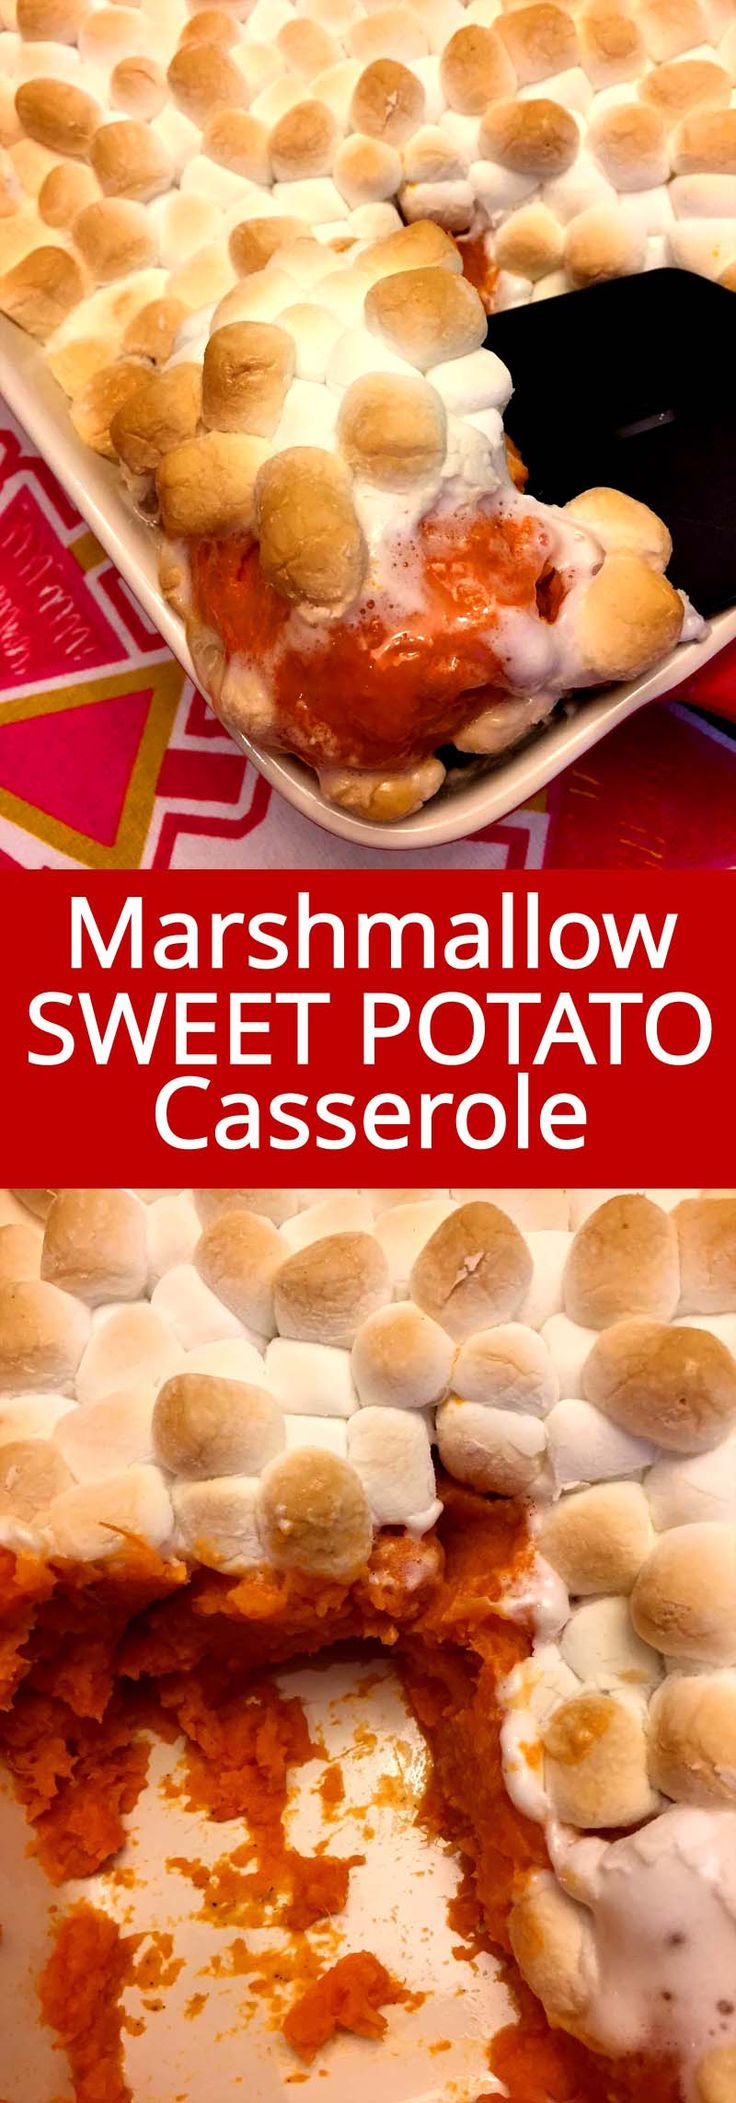 This sweet potato casserole with marshmallows on top is amazing! This is my favorite Thanksgiving dish!  Everyone loves sweet potato marshmallow bake! Golden brown marshmallows that are melted inside go so well with creamy sweet potatoes!